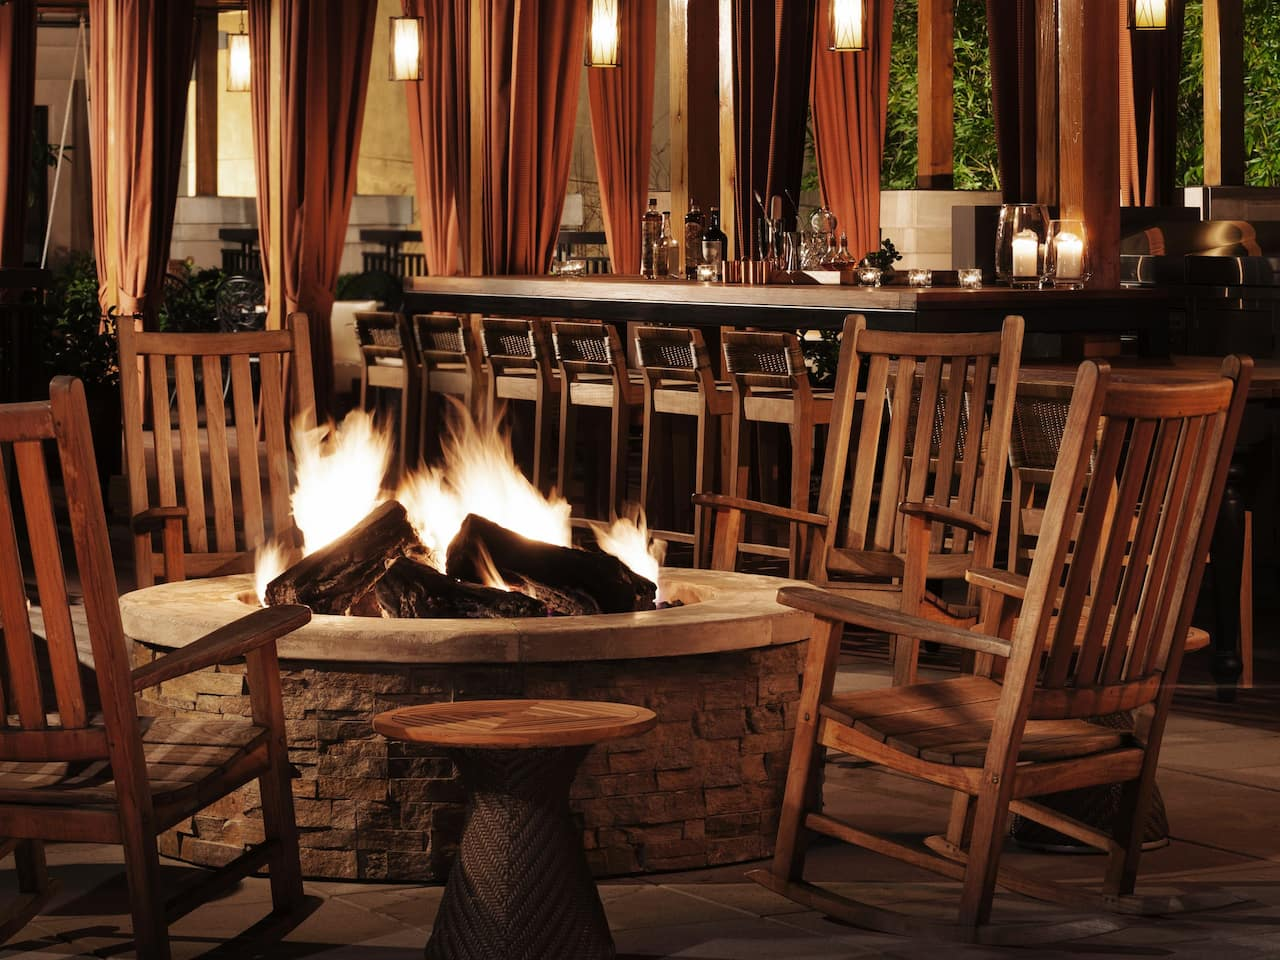 Outdoor Seating and Firepit at Mercantile Terrace in Napa